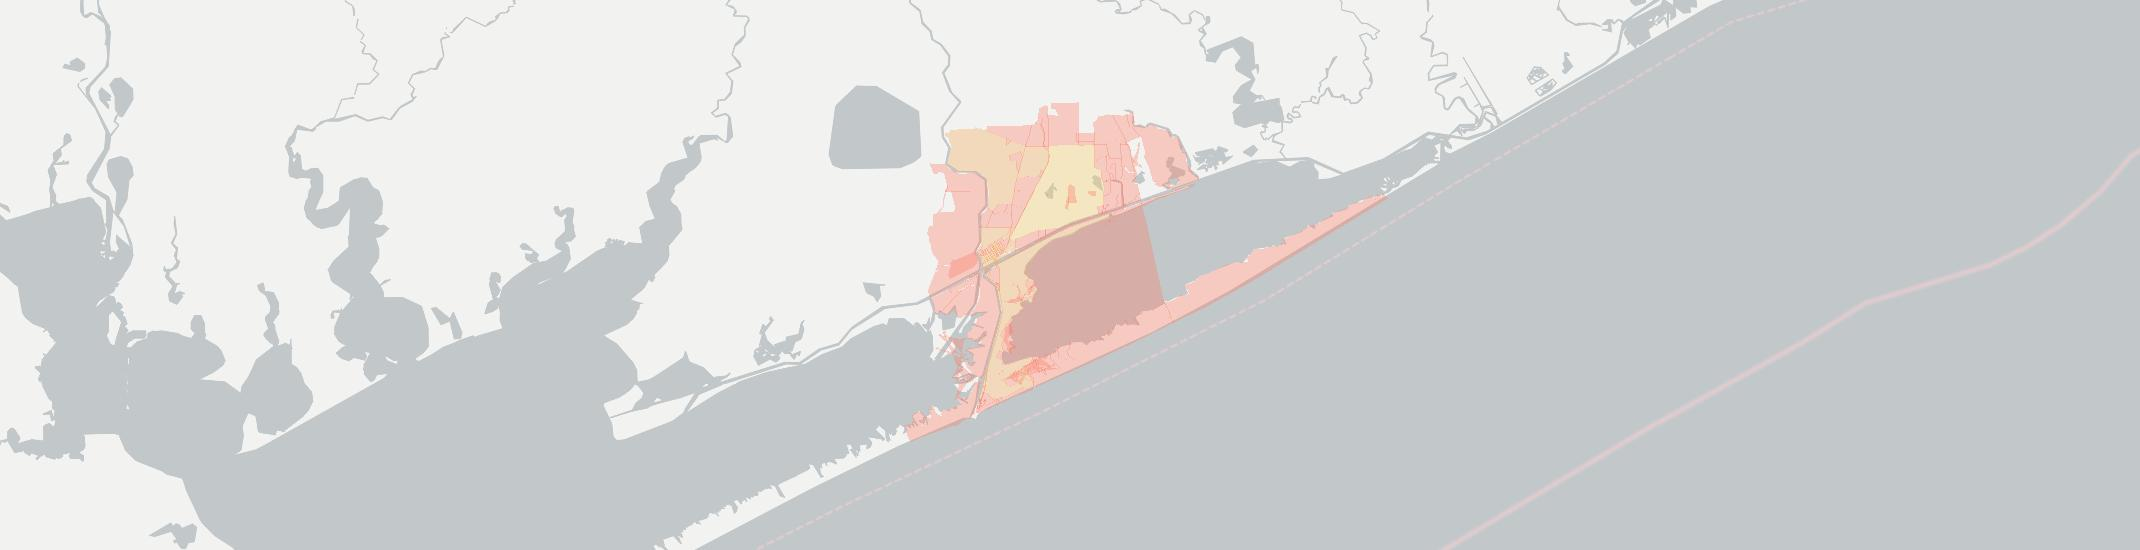 Matagorda Internet Competition Map. Click for interactive map.